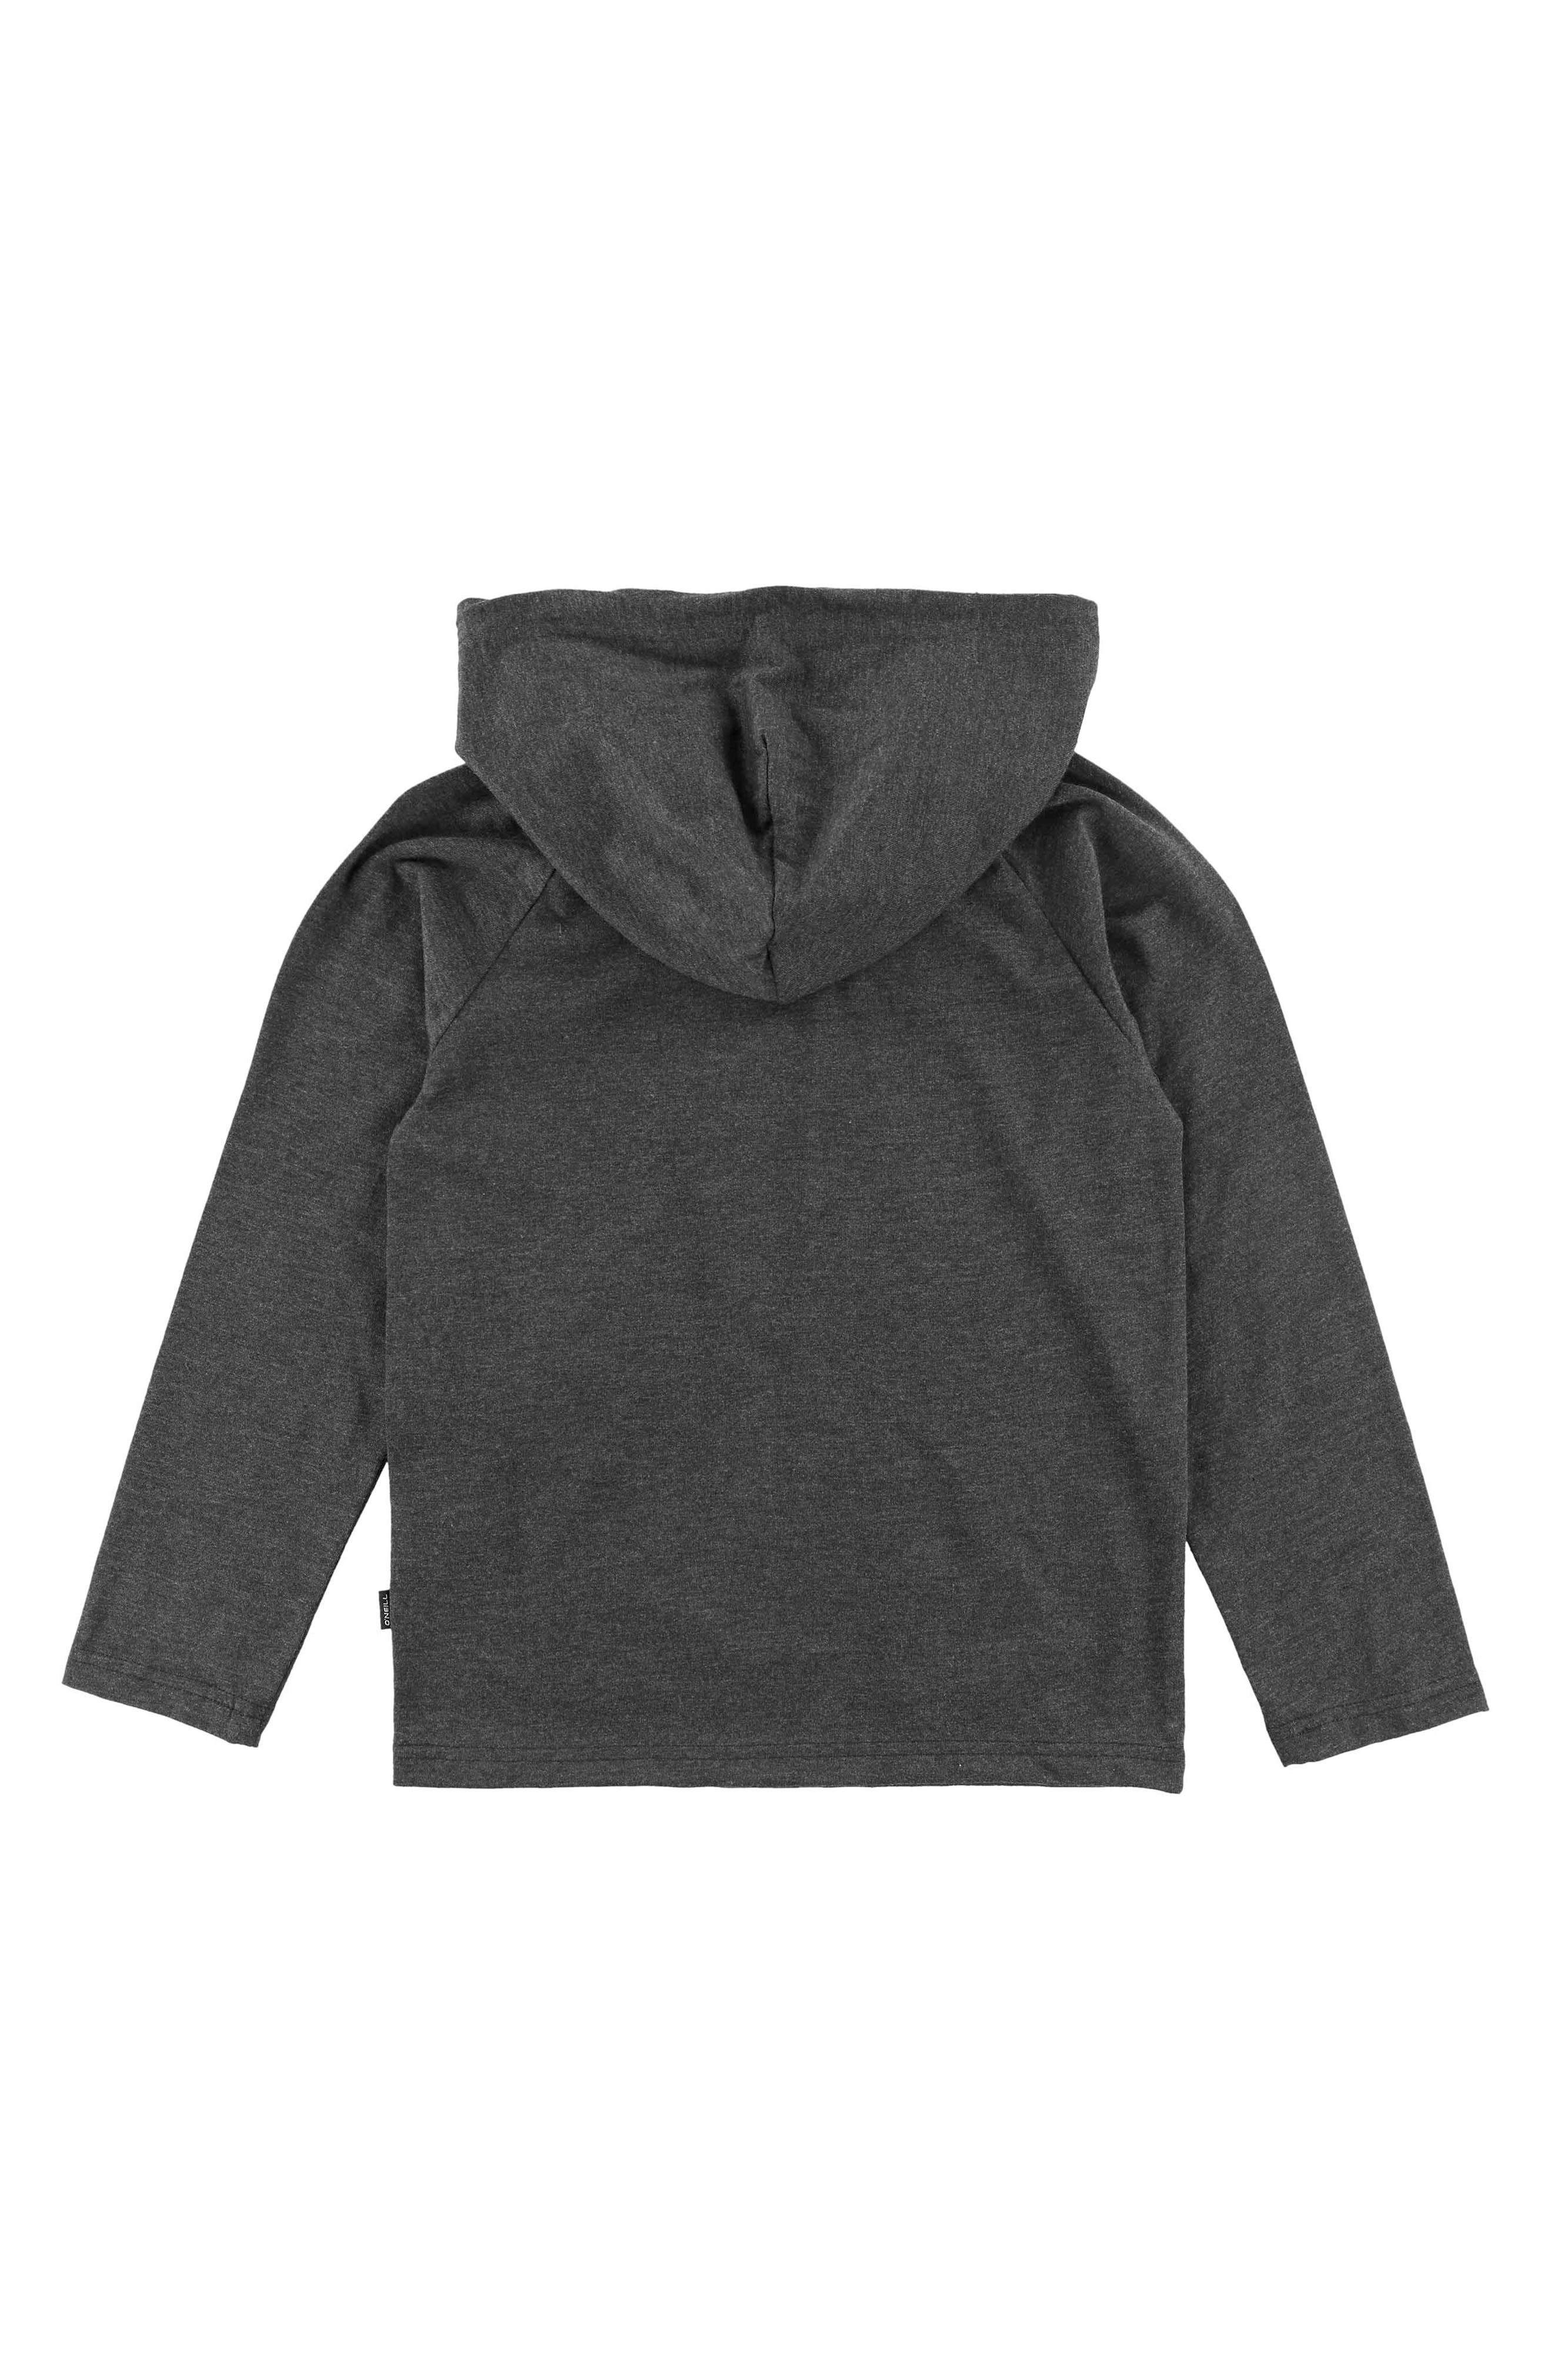 O'NEILL,                             Weddle Hoodie,                             Main thumbnail 1, color,                             001